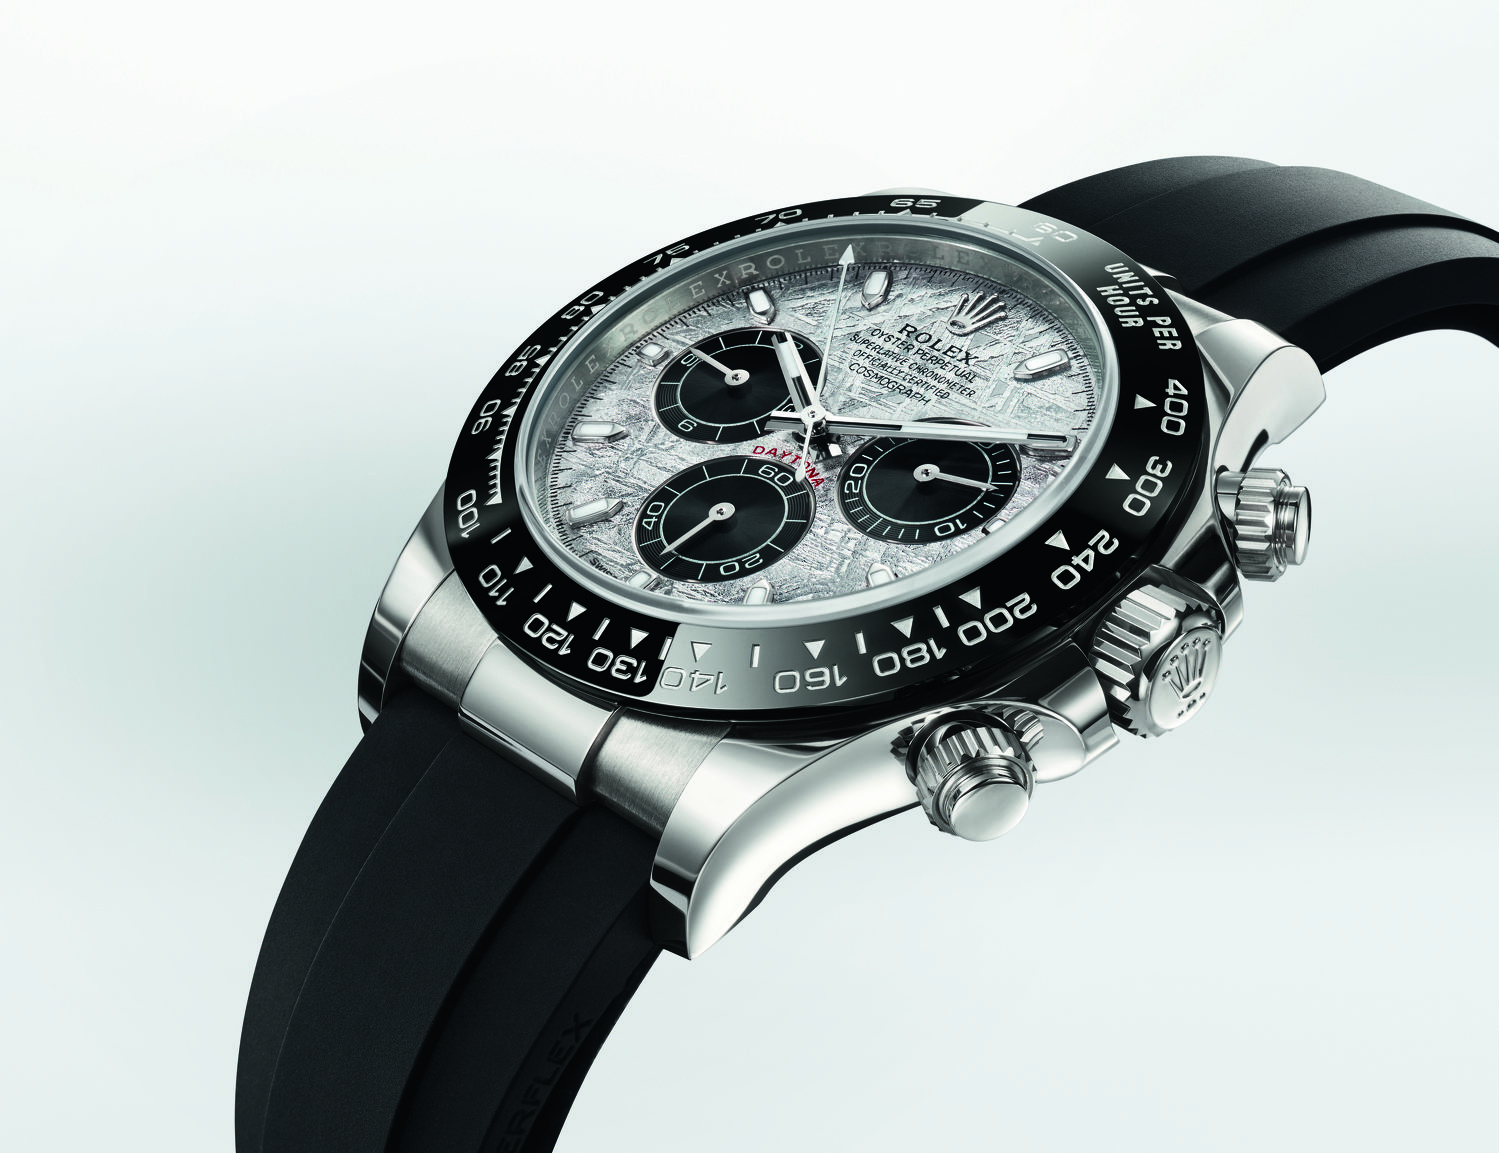 Oyster Perpetual Cosmograph Daytona in 18 ct white gold - THE EDGE SINGAPORE